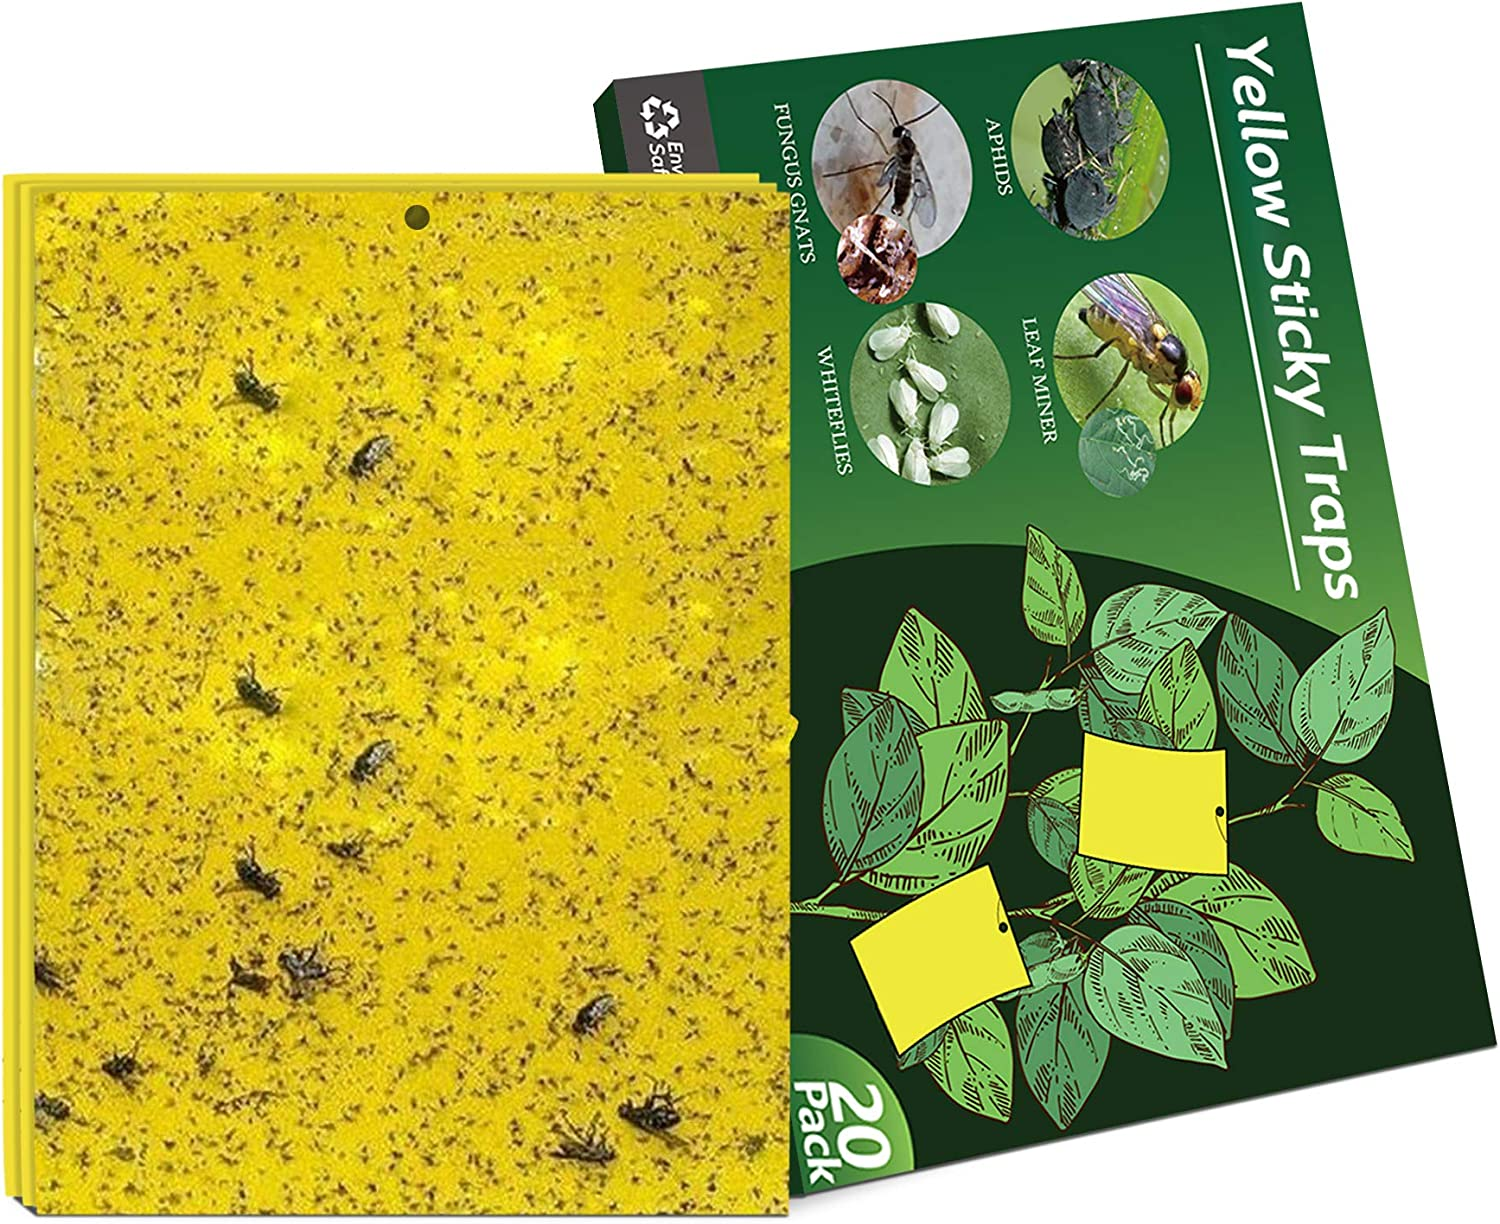 Negarly 20-Pack Dual-Sided Yellow Sticky Traps for Flying Plant Insect Like Fungus Gnats, Whiteflies, Aphids, Leaf Miners, Thrips, Other Flying Plant Insects - 6x8 Inches, Twist Ties Included